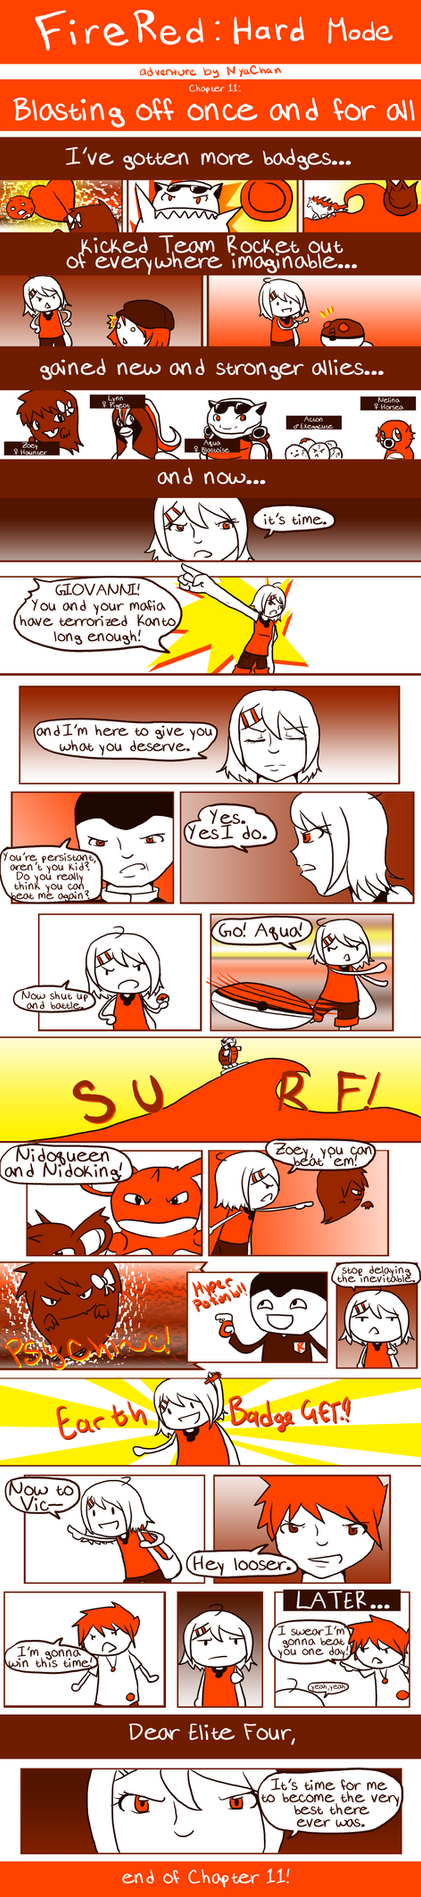 FireRed: Chapter 11 by RitsuBel